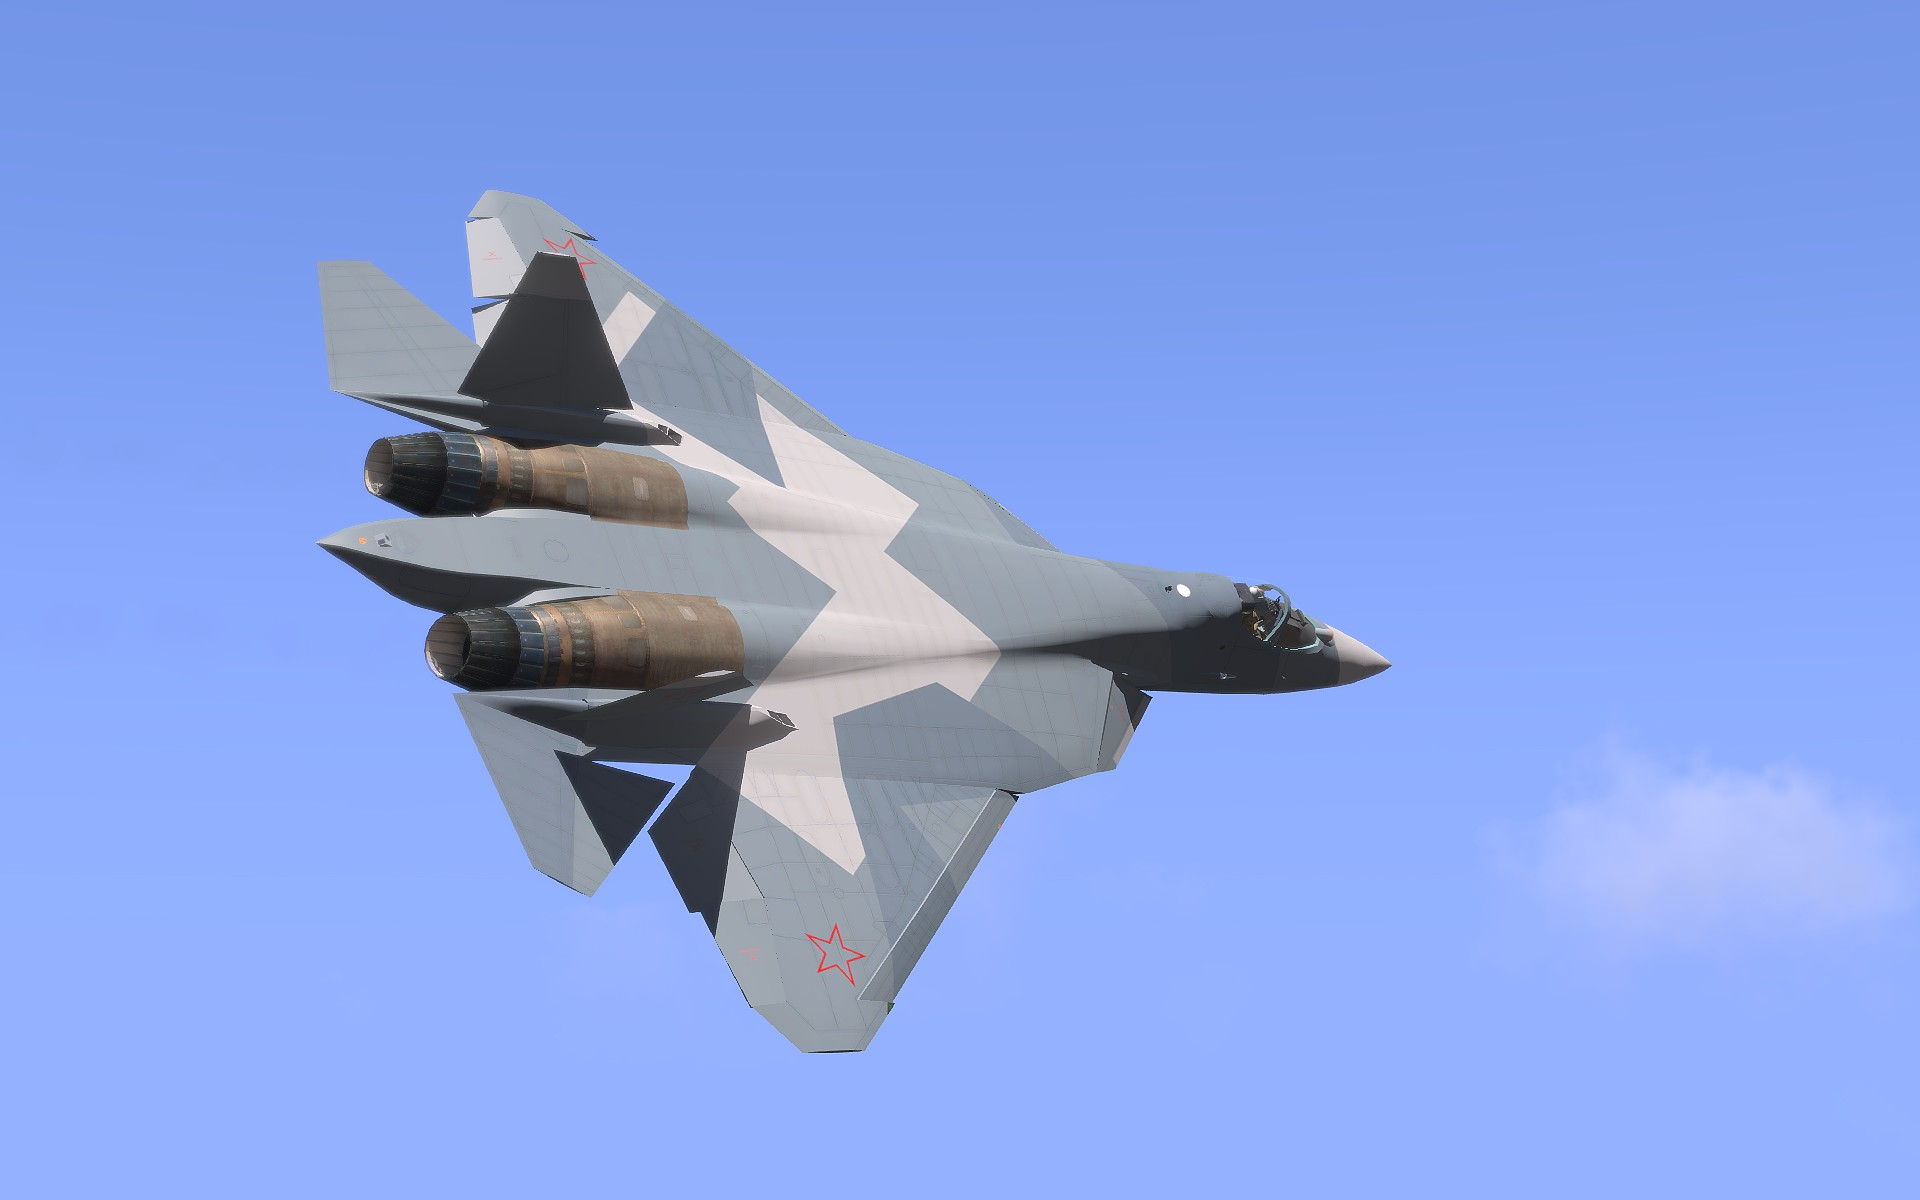 Wipeout Hd Wallpaper New Engine For Russia S Sukhoi T50 To Be Tested This Year